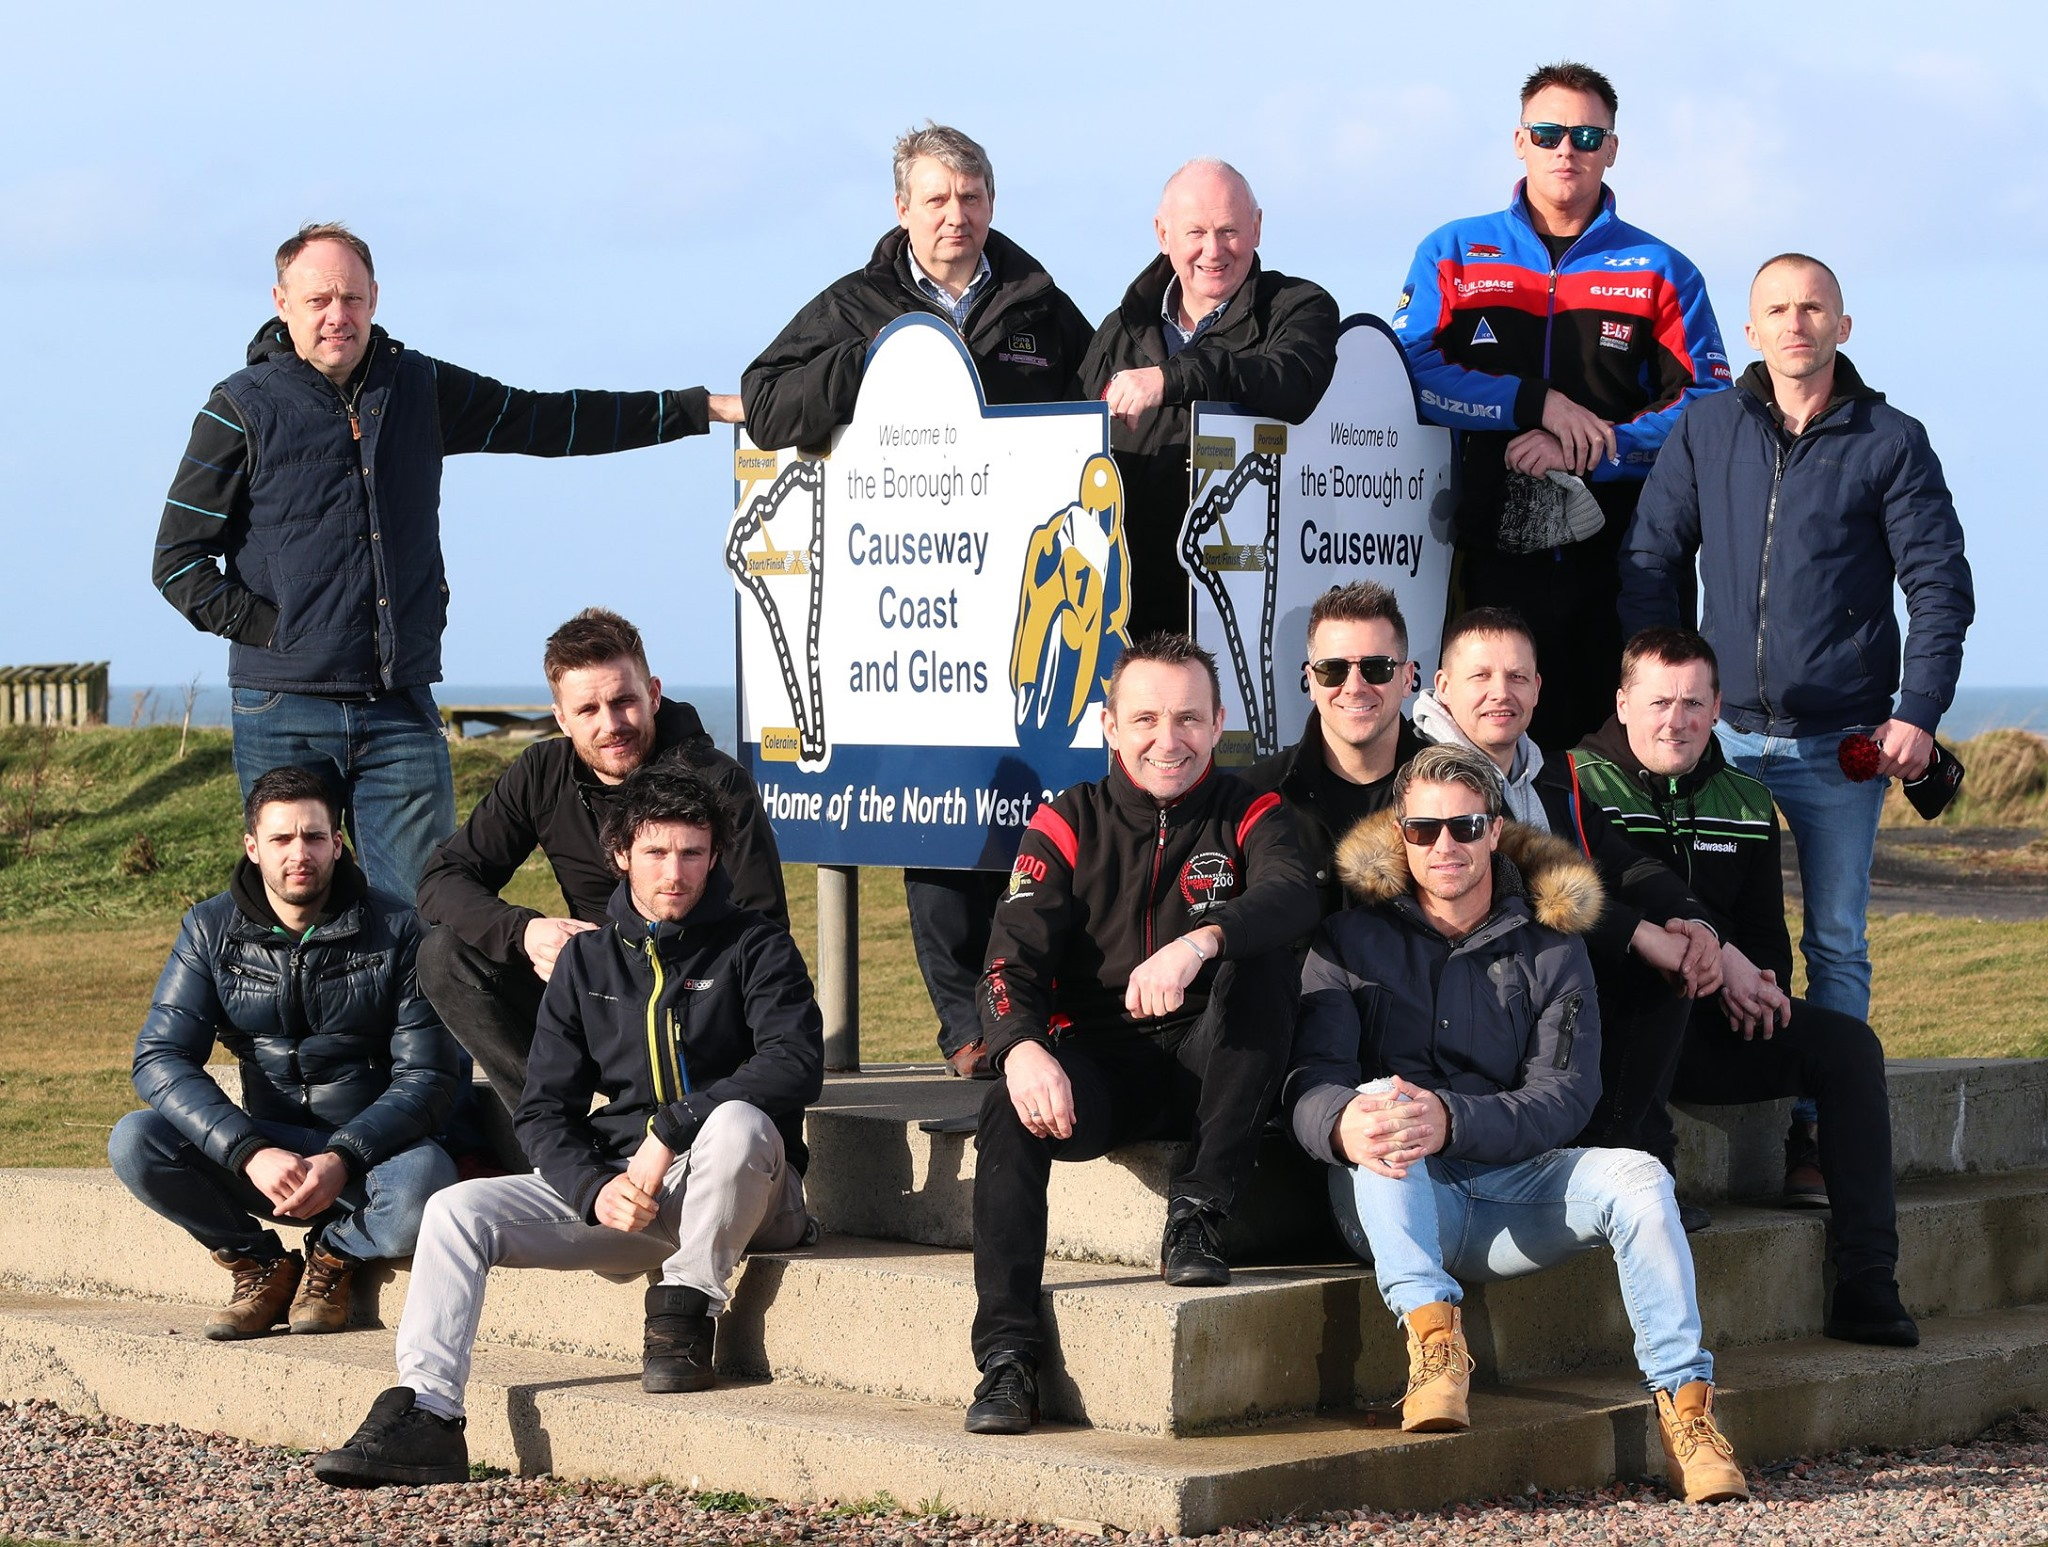 Prospective NW200 Newcomers Visit Triangle Course